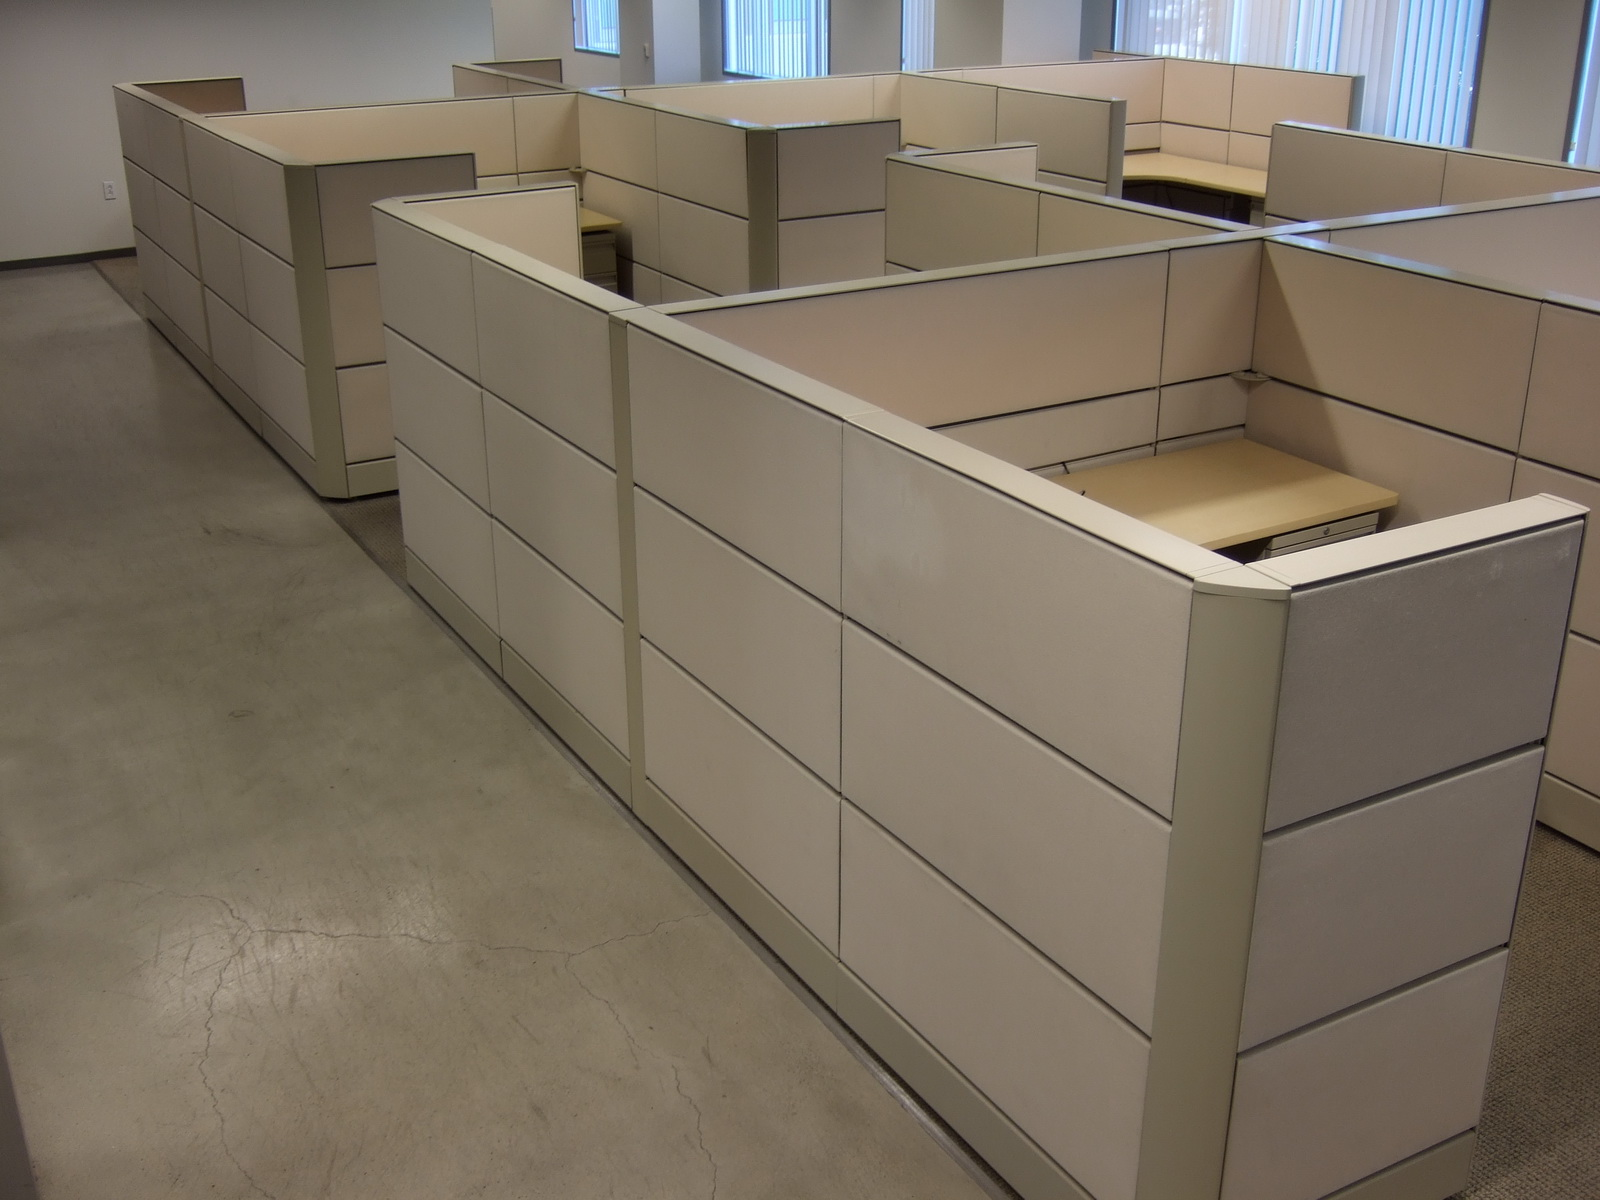 27 Office Furniture Liquidators Inland Empire Used Office Cubicle Image 1 National